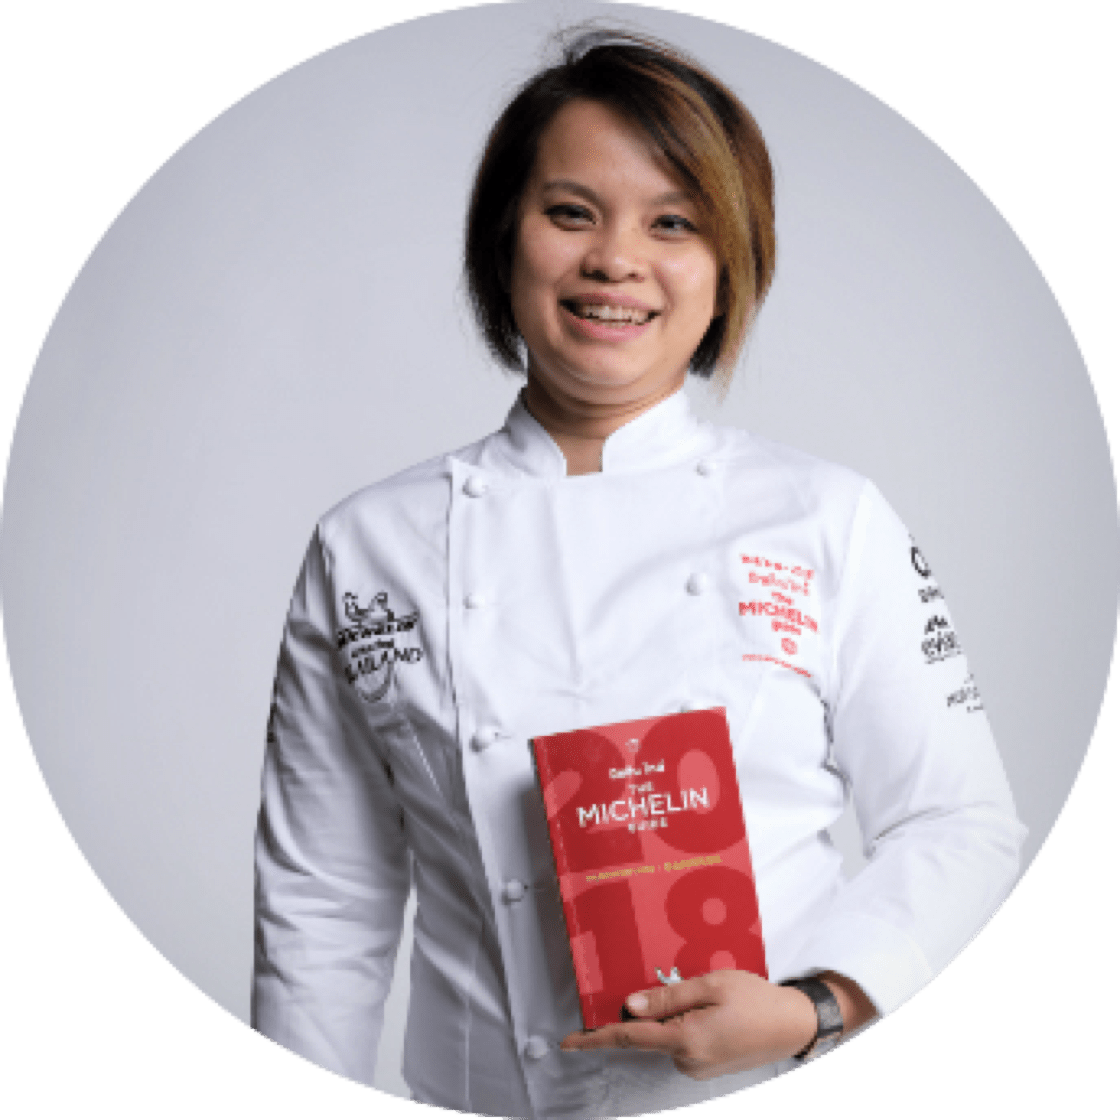 d26b3f6e2b984bd99fe83ee6bb99704c_Chef-Bee-Michelin-Guide-Bangkok.png